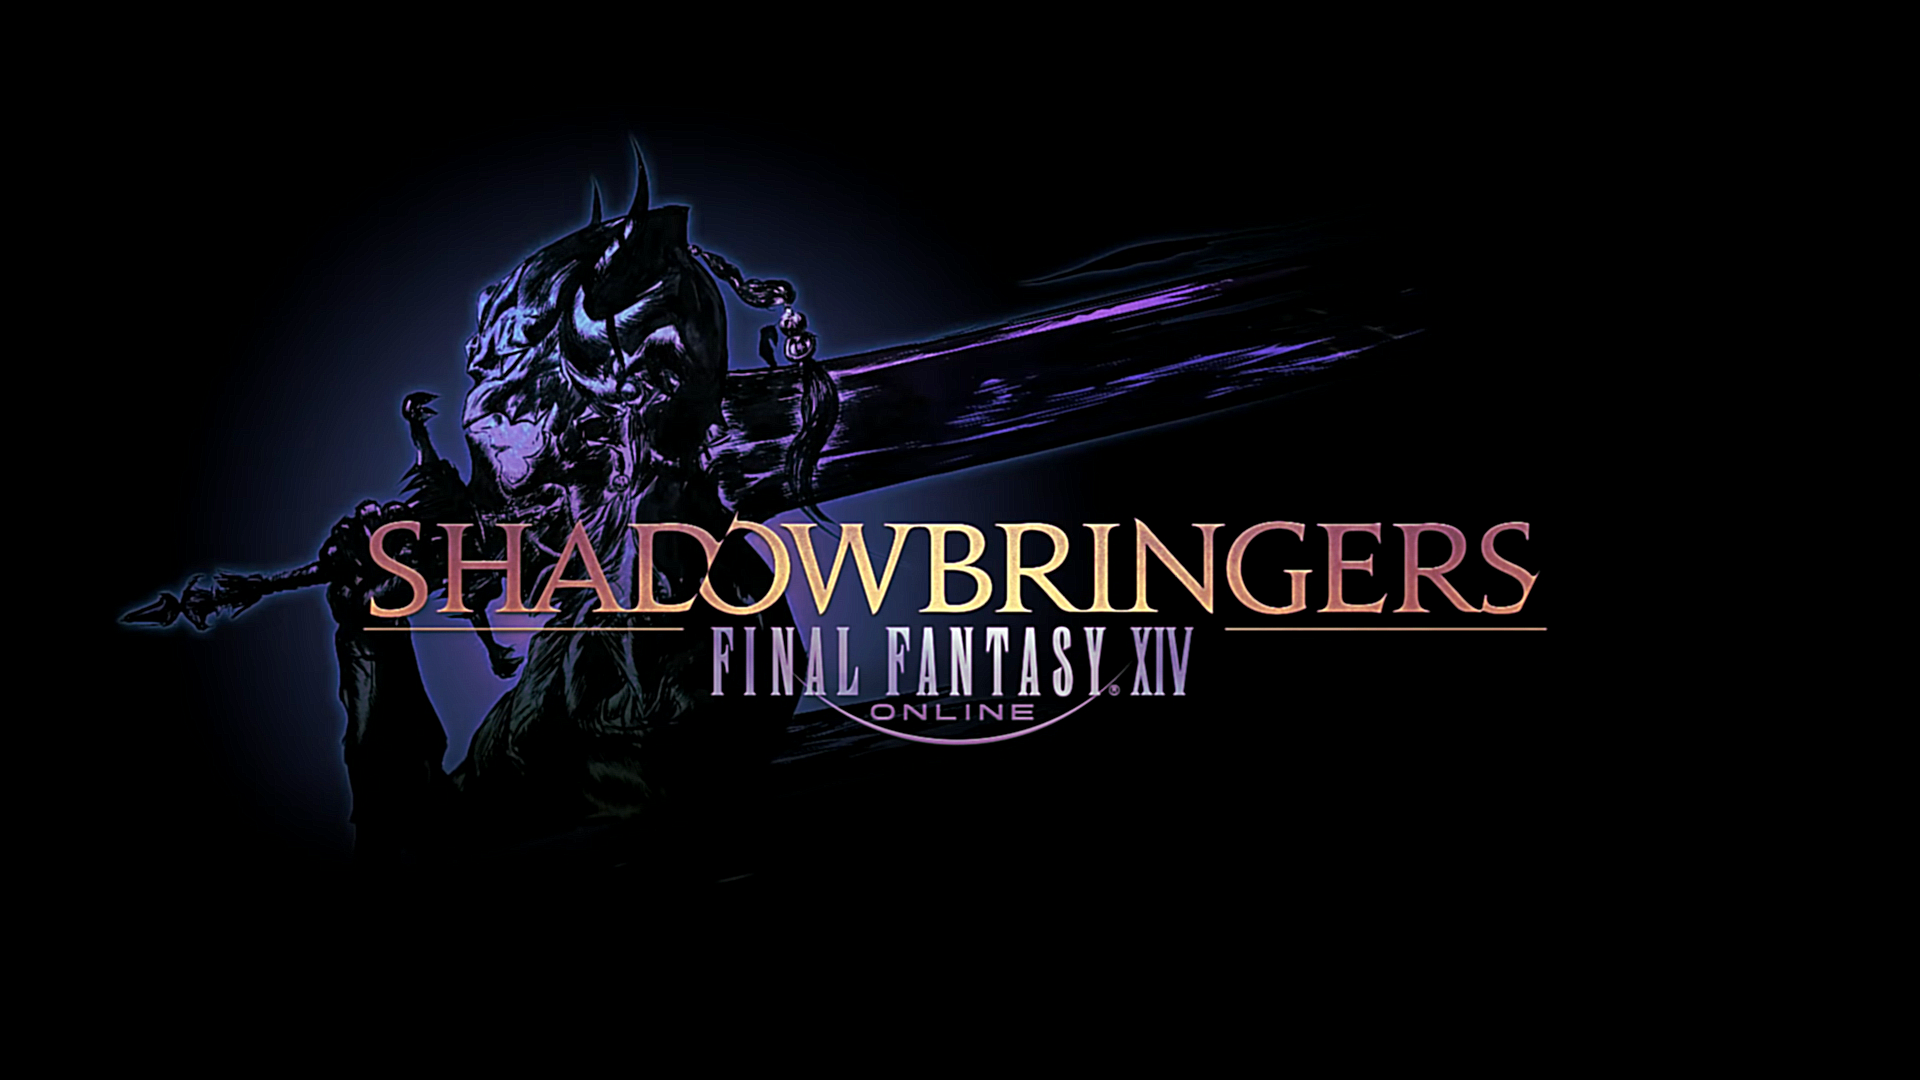 Final Fantasy XIV: Shadowbringers Preview | Trusted Reviews